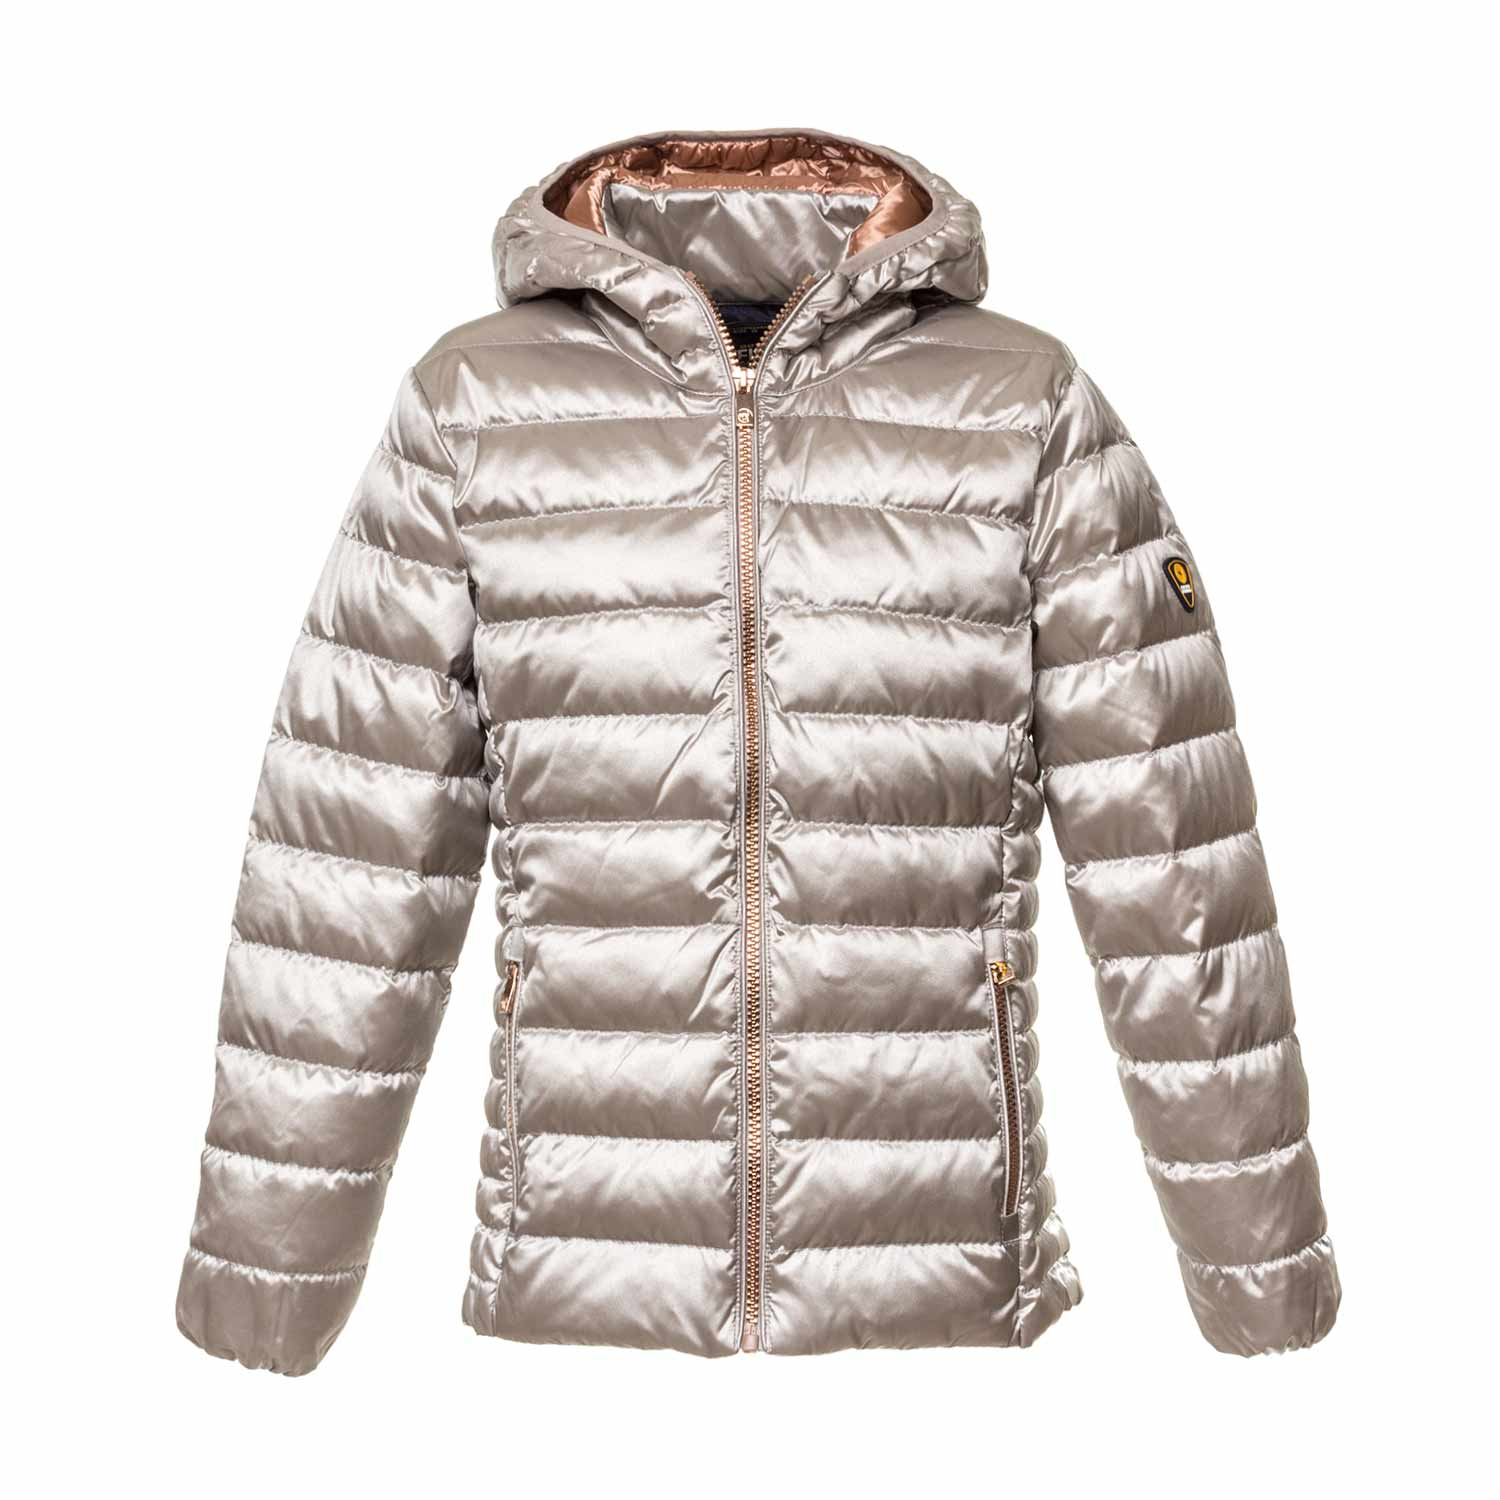 buy popular 7c7e1 bfc69 Girl Ivory Down Jacket